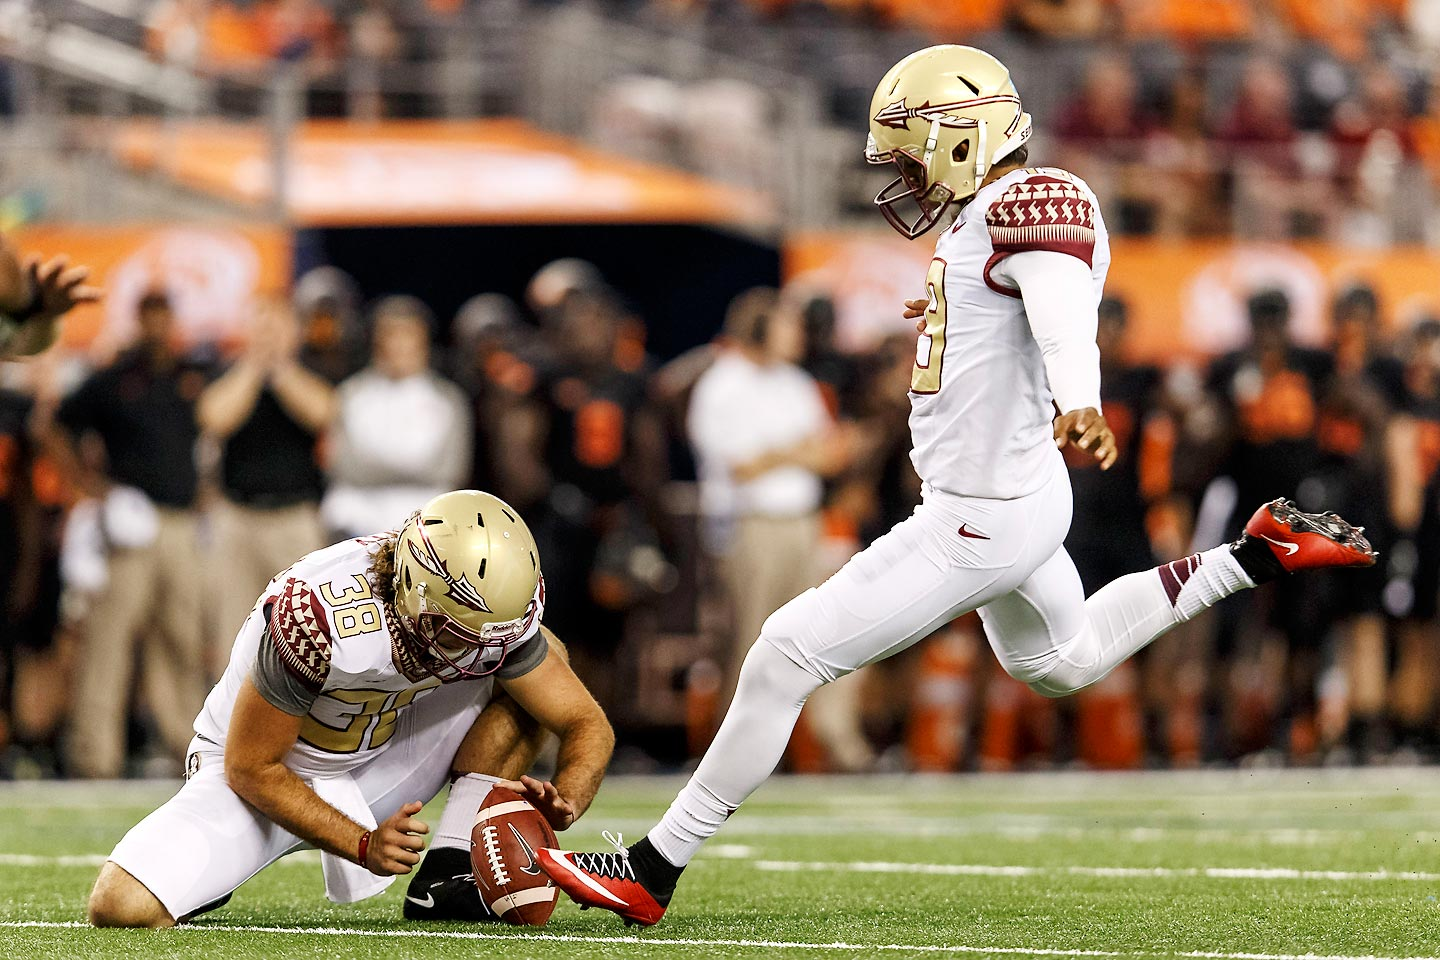 Aguayo has been lights out since 2013, when he won the Lou Groza award as a redshirt freshman. After hitting on 27-of-30 field goals last year (not a single miss came inside of 40 yards), the Seminoles kicker passed up on a chance to enter the NFL draft early.